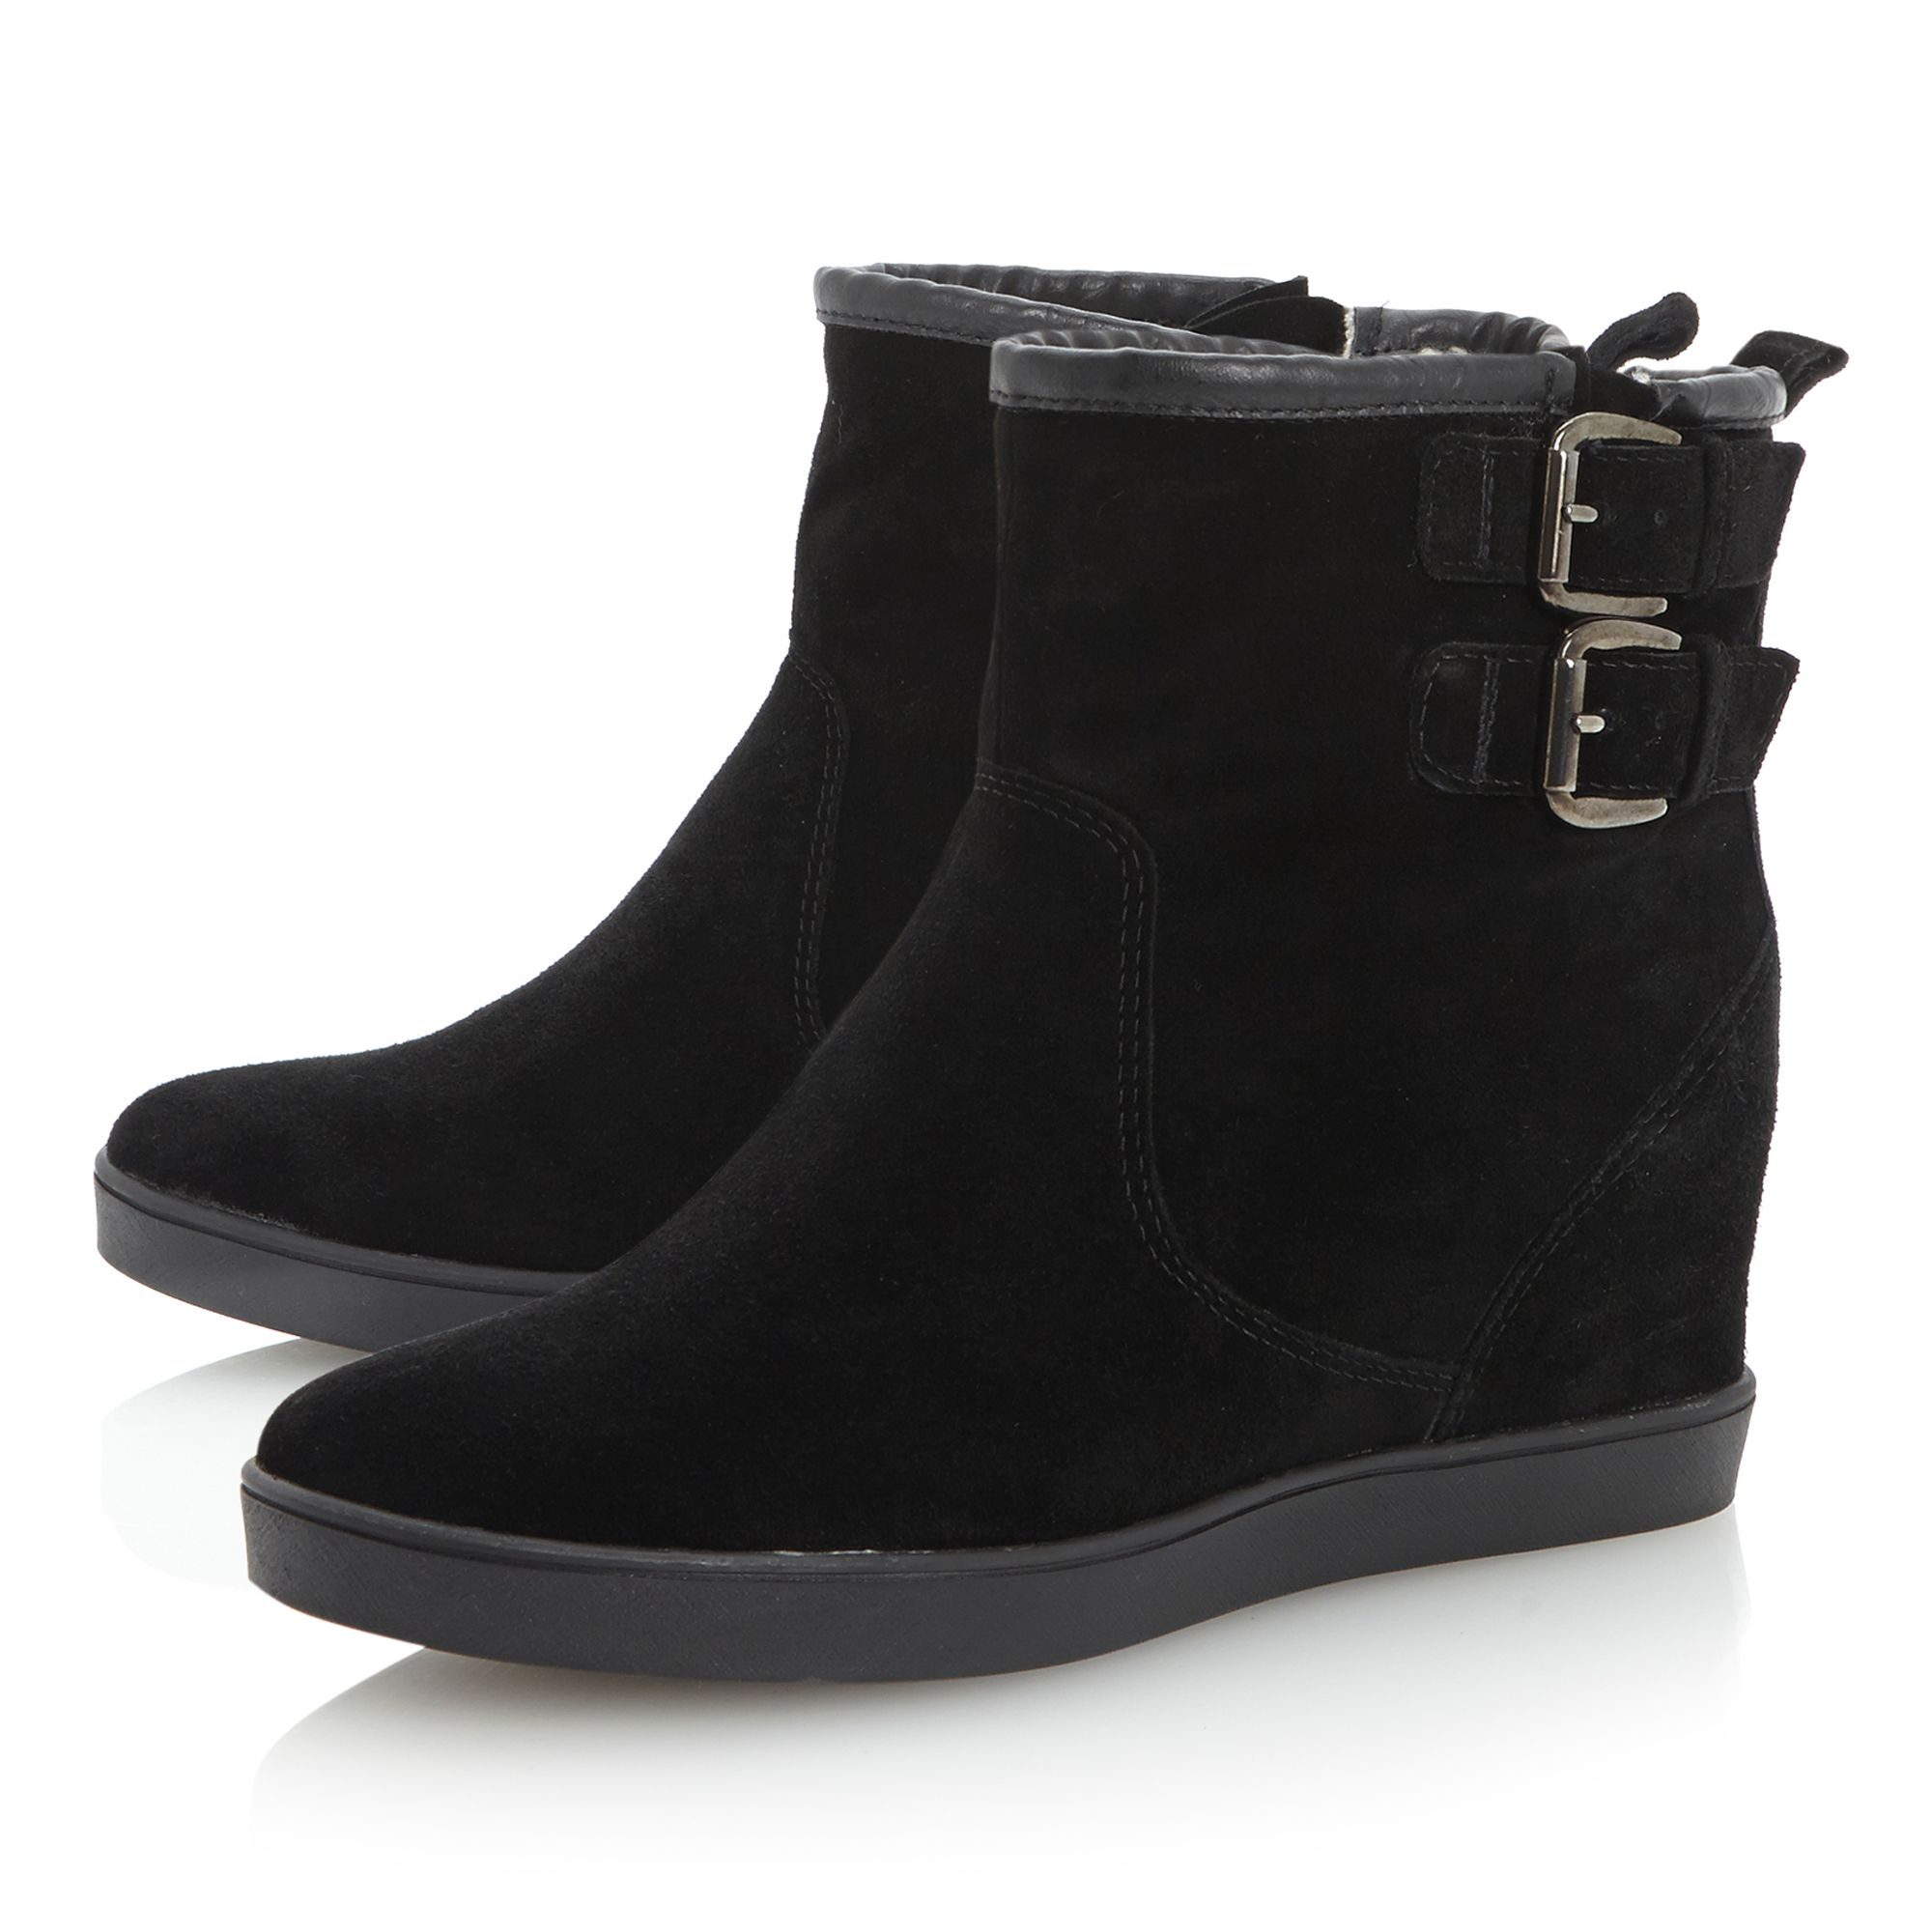 Prowl concealed wedge boots